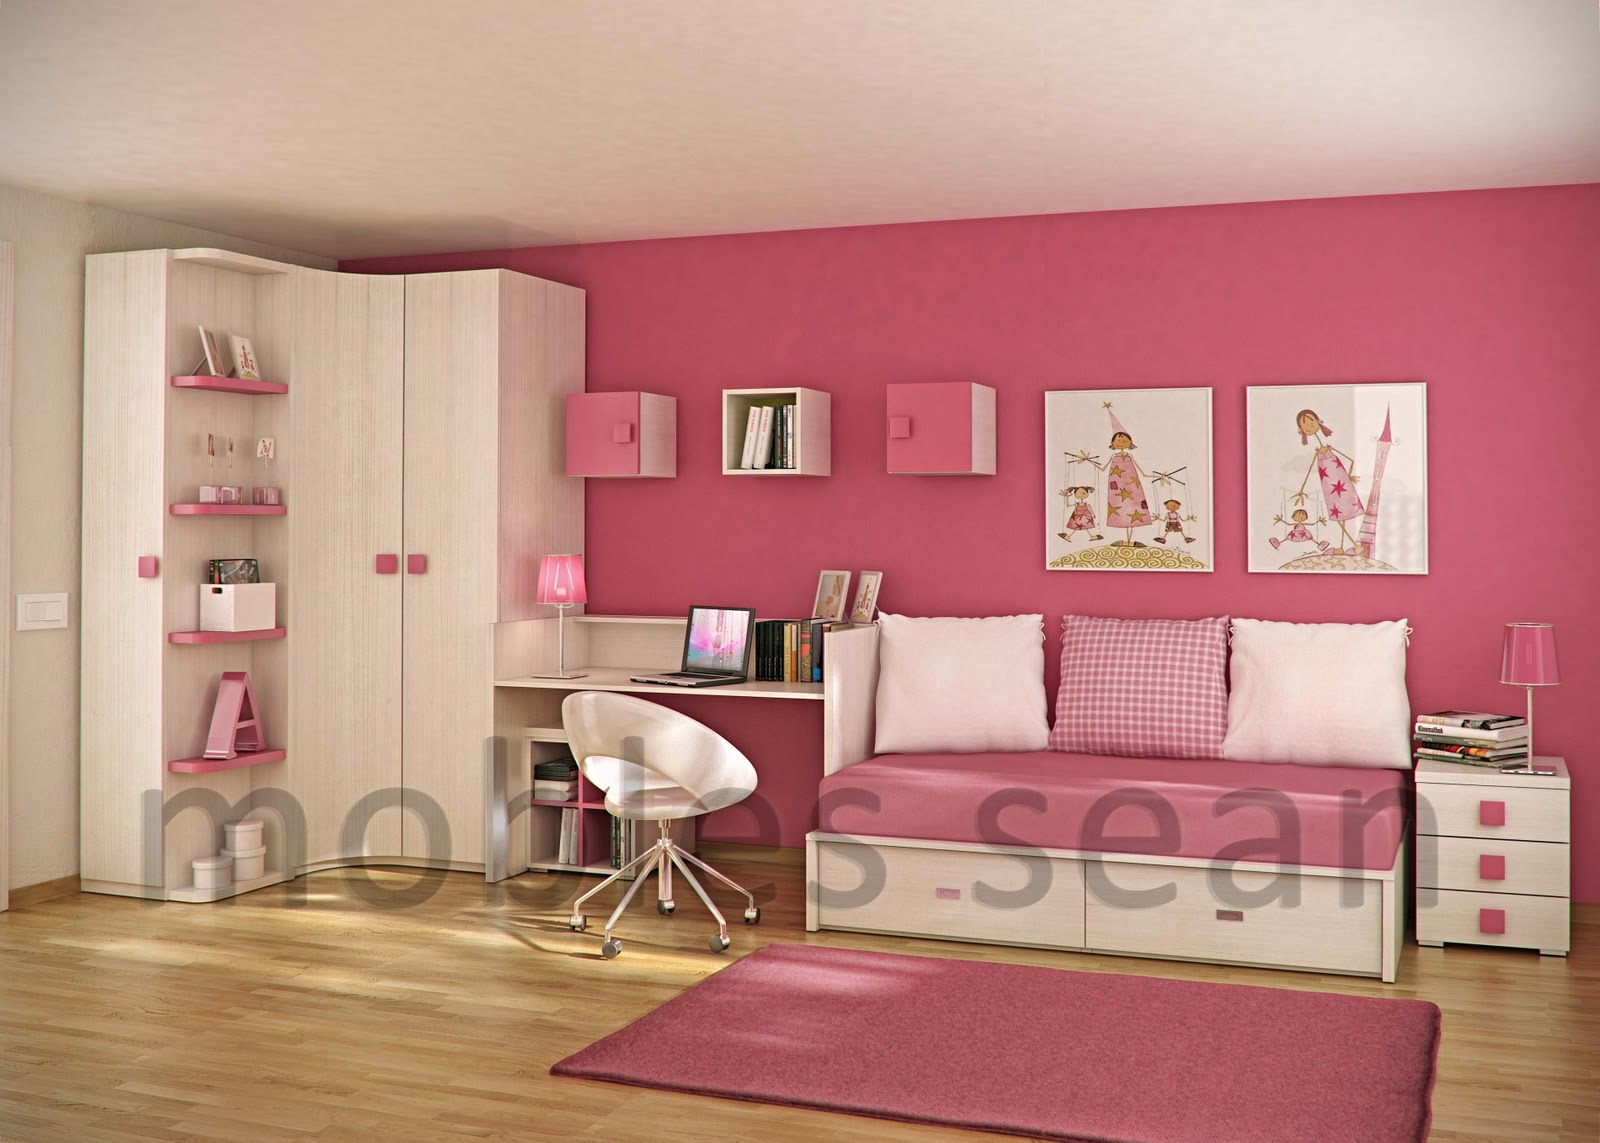 Pics Of Kids Rooms Space Saving Designs For Small Kids Rooms